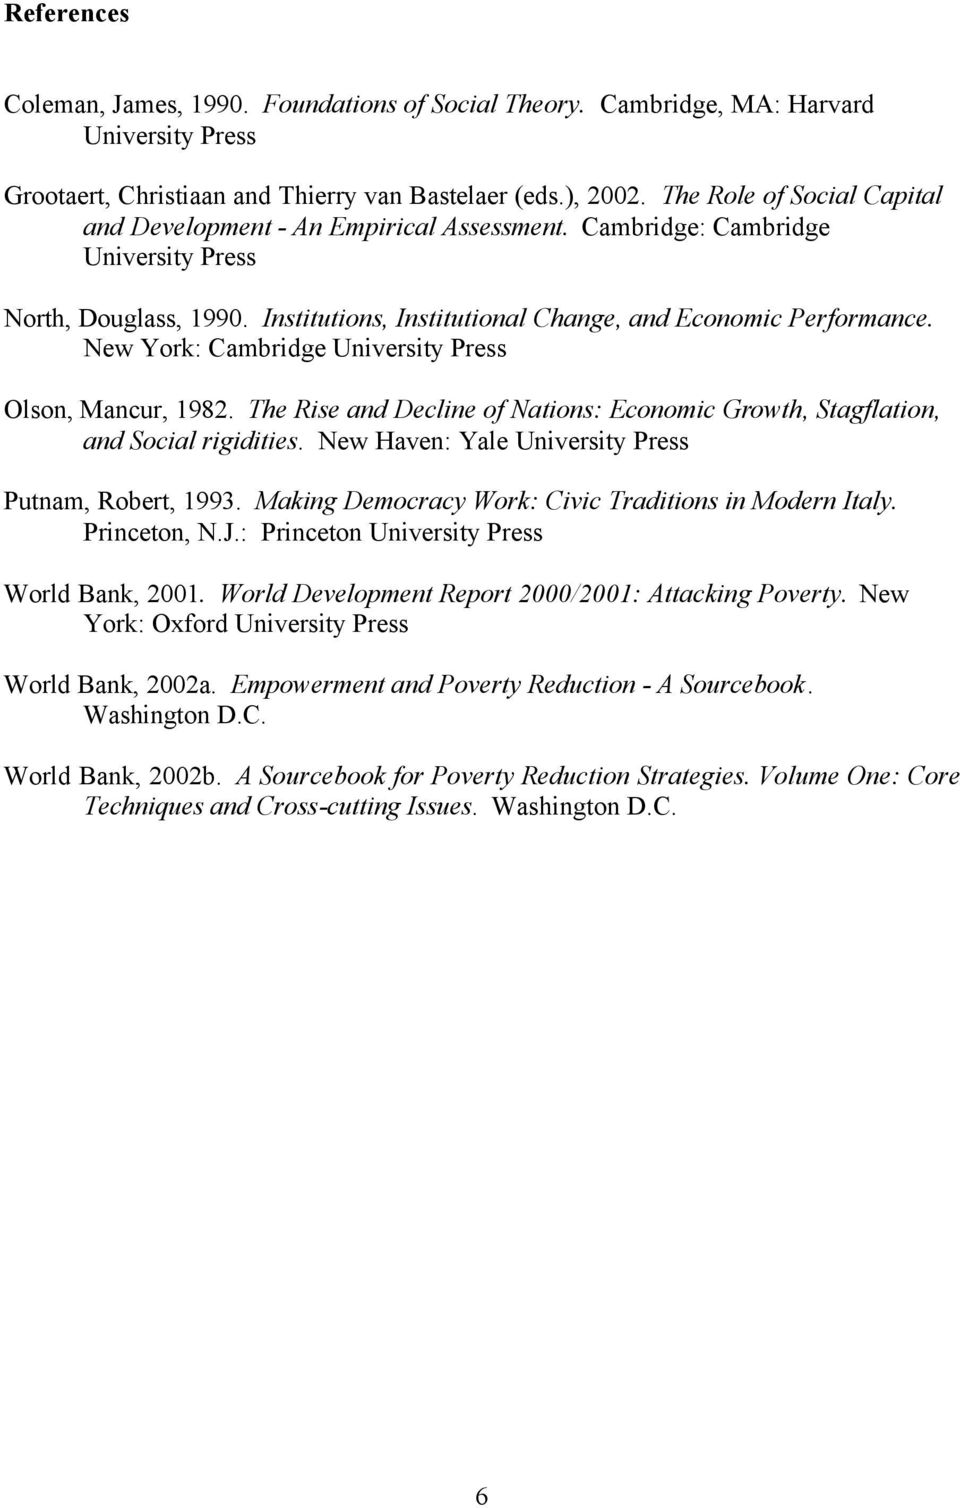 New York: Cambridge University Press Olson, Mancur, 1982. The Rise and Decline of Nations: Economic Growth, Stagflation, and Social rigidities. New Haven: Yale University Press Putnam, Robert, 1993.